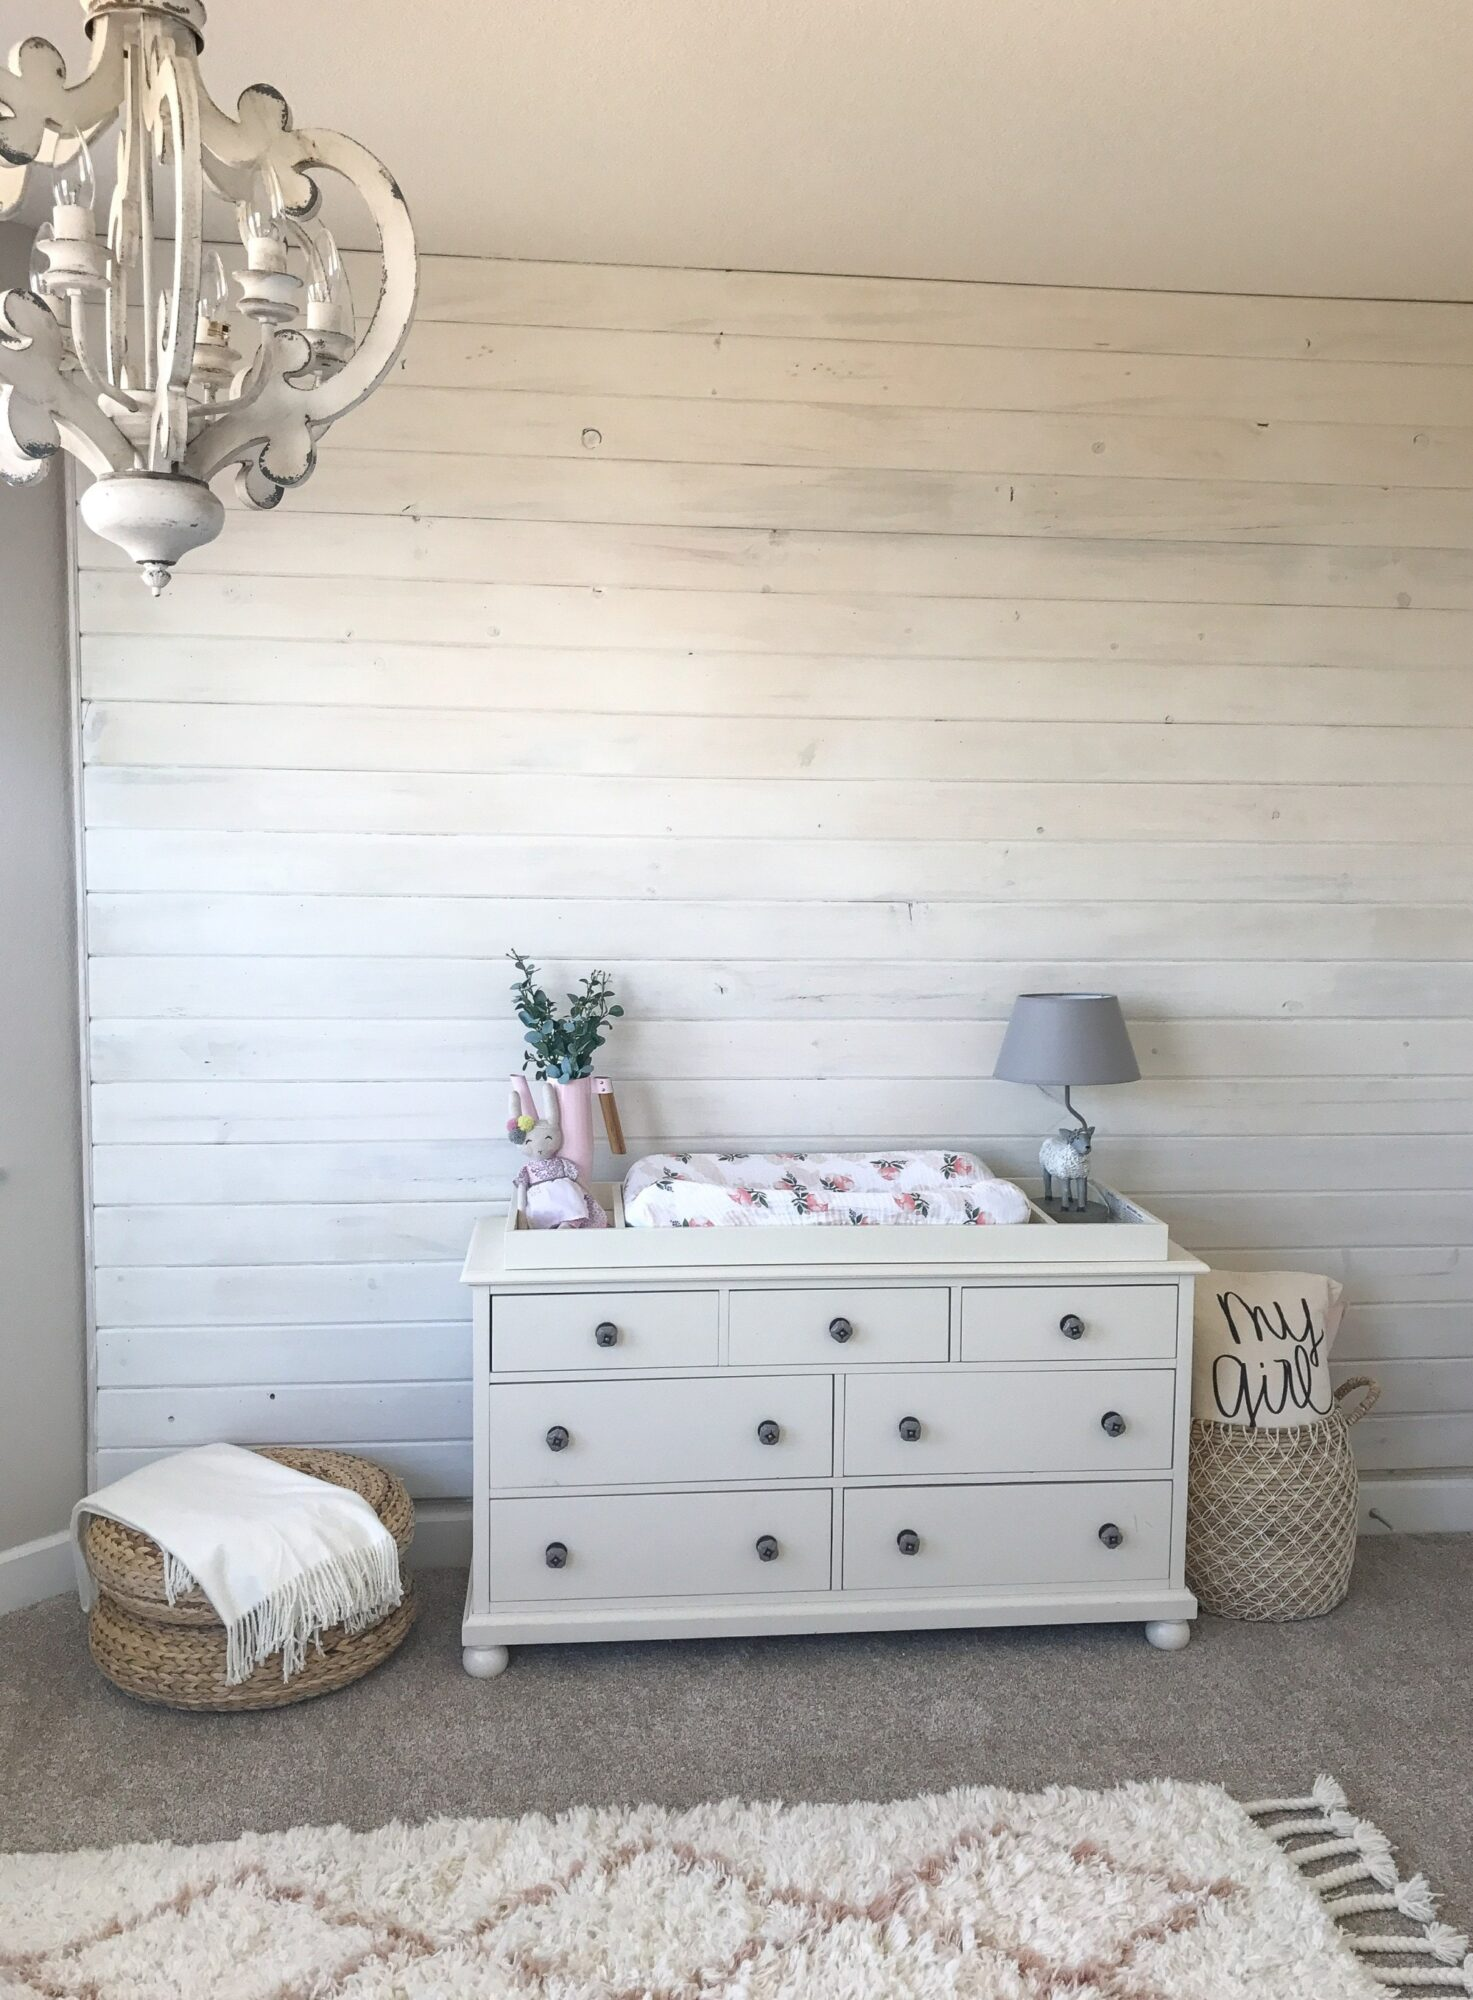 How to whitewash a wood panelled wall